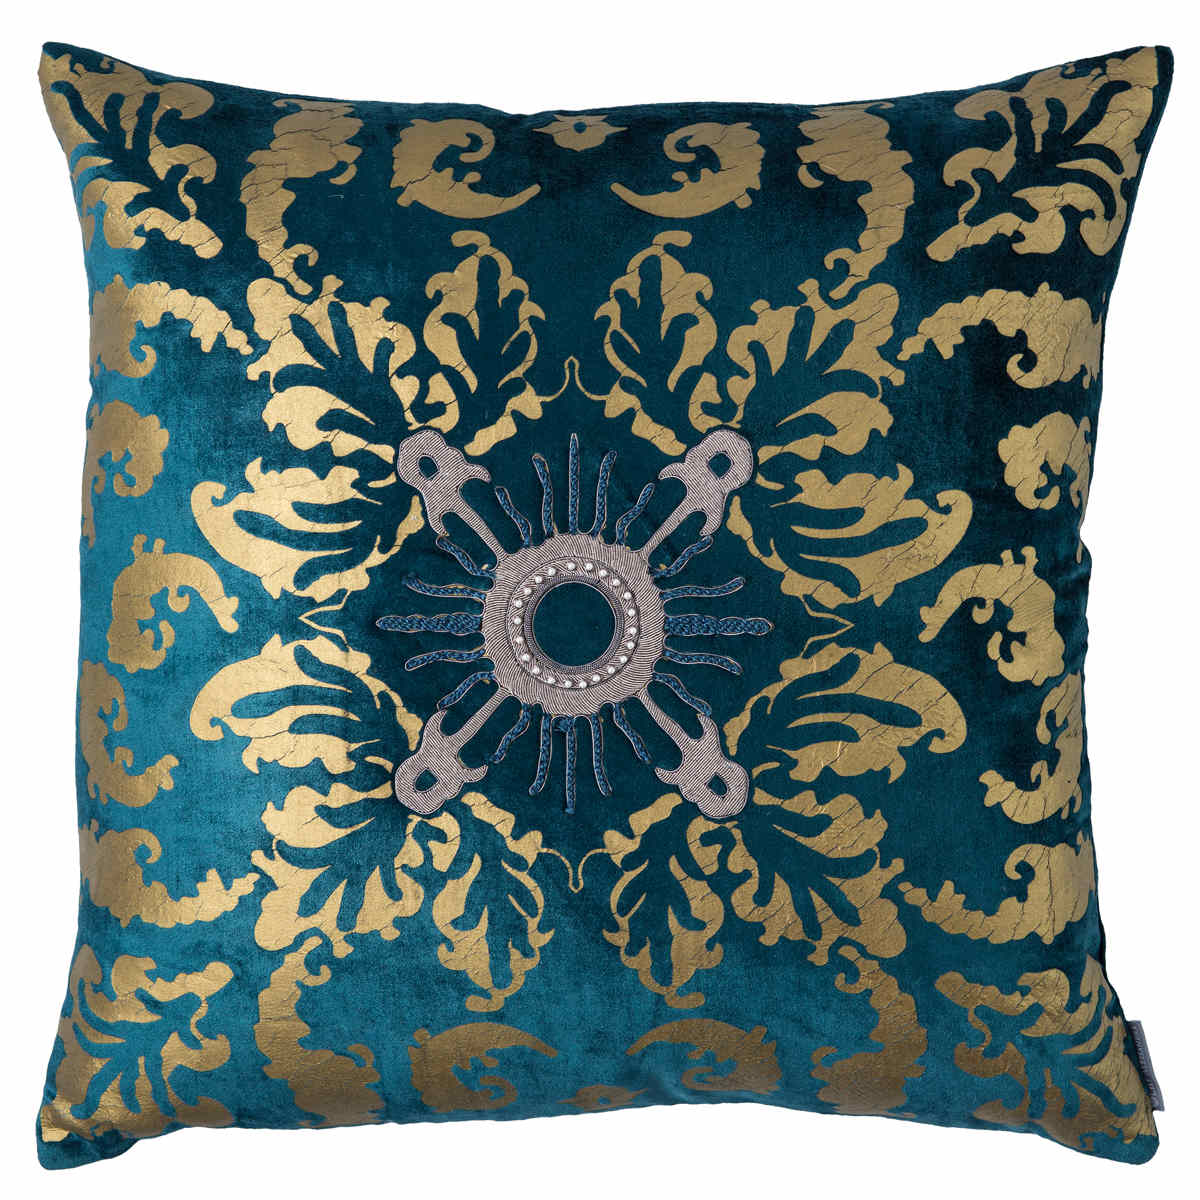 brien throw o pillow kevin hei velvet pillows anthropologie decorative gold garland